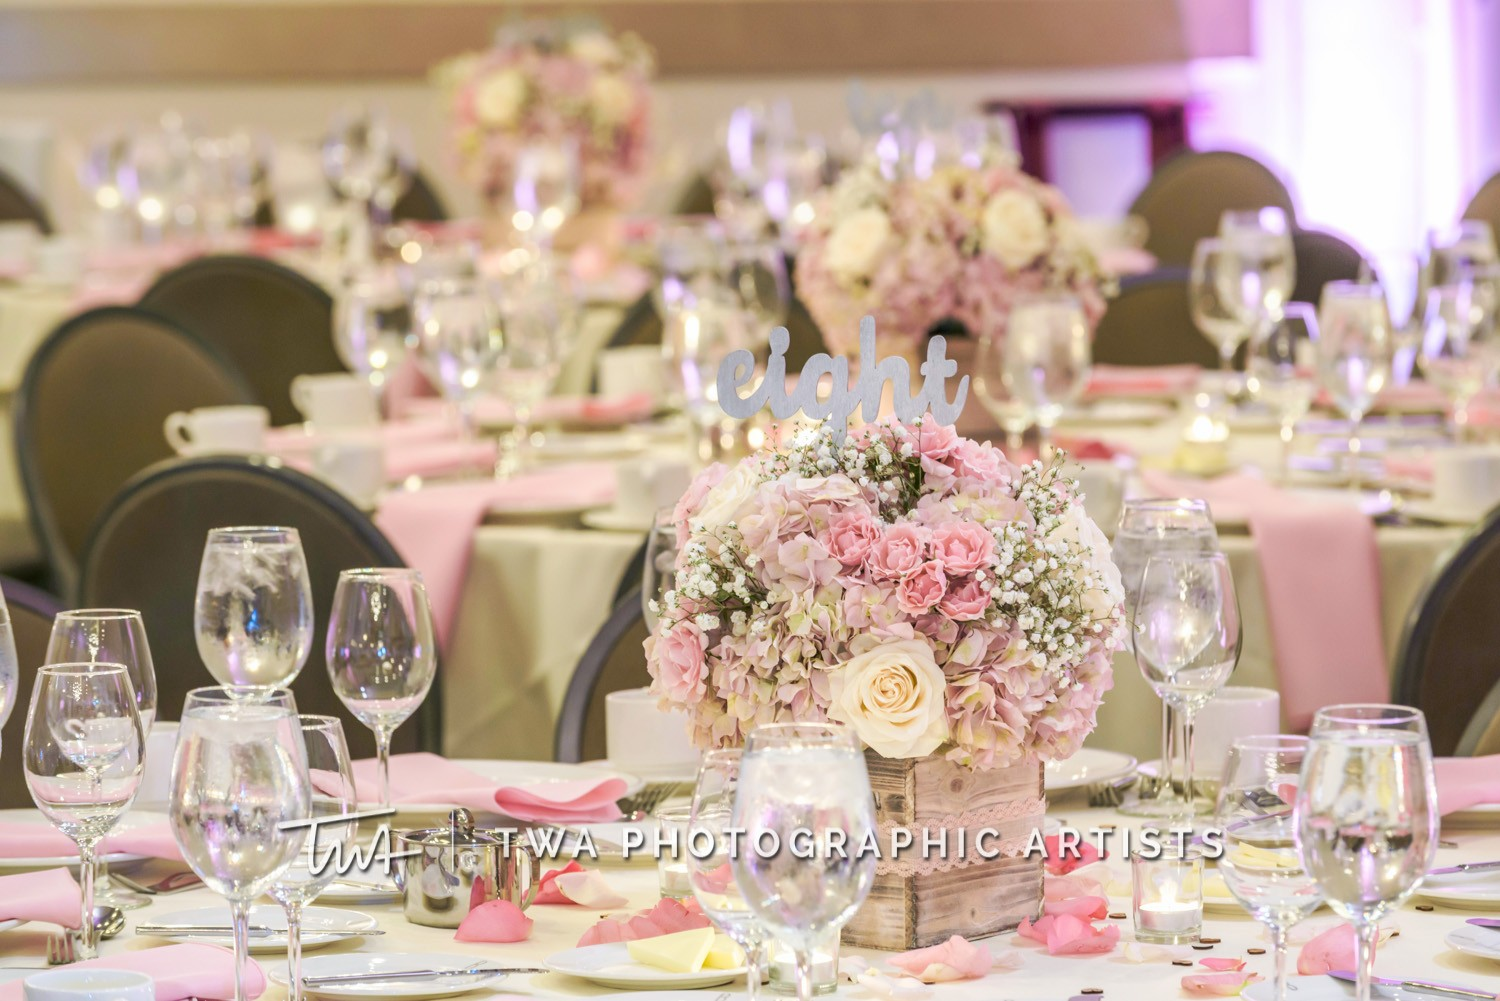 Chicago-Wedding-Photographer-TWA-Photographic-Artists-Belvedere-Banquets_Smith_Meyer_JP_GP-0538